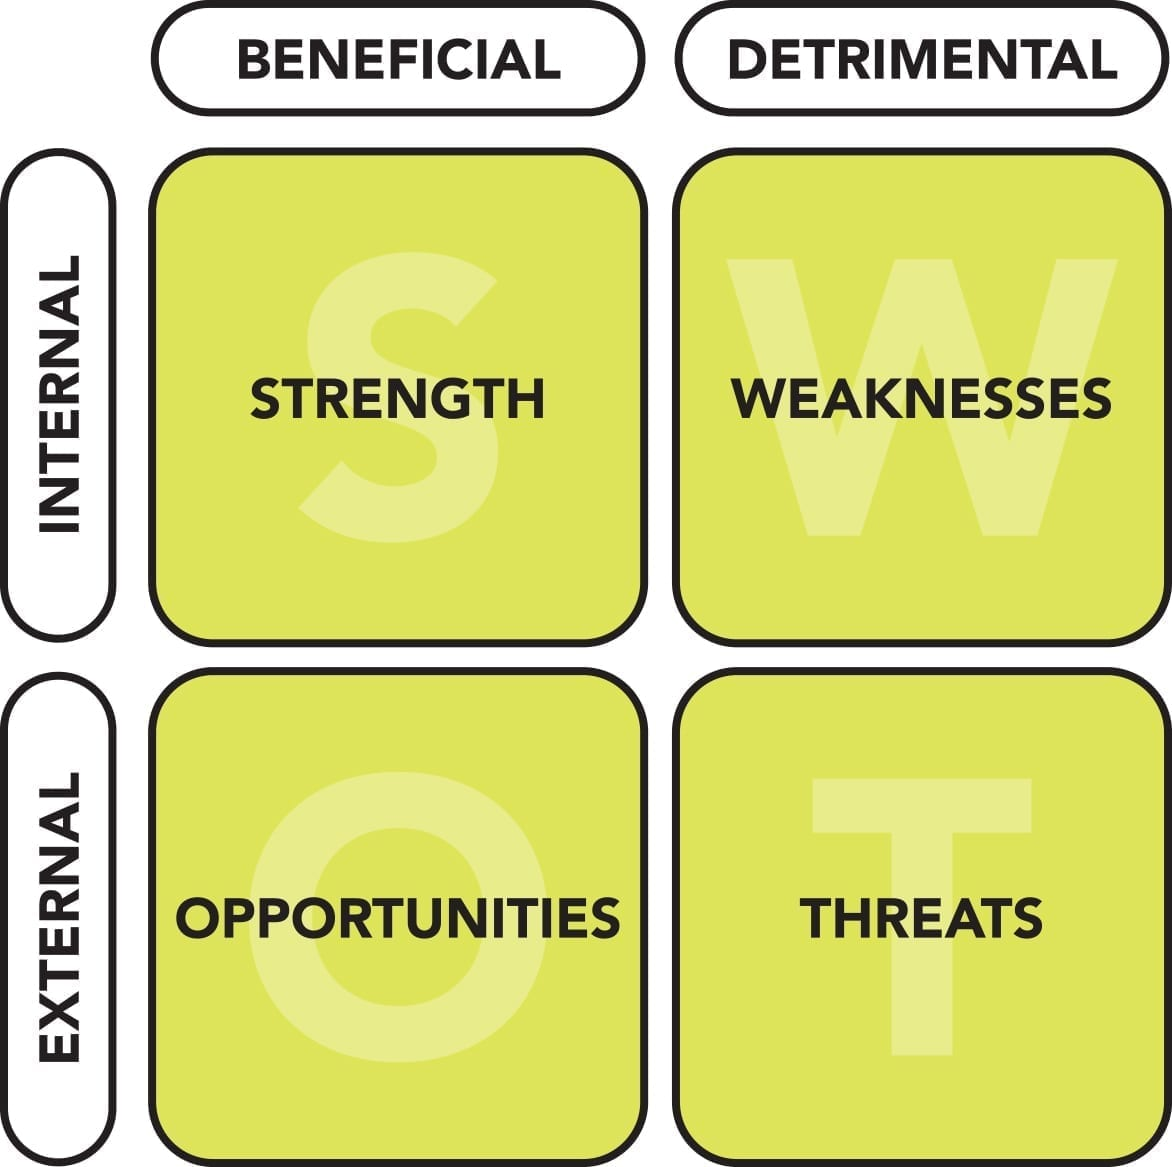 A SWOT analysis organized into a matrix is a helpful analysis tool.